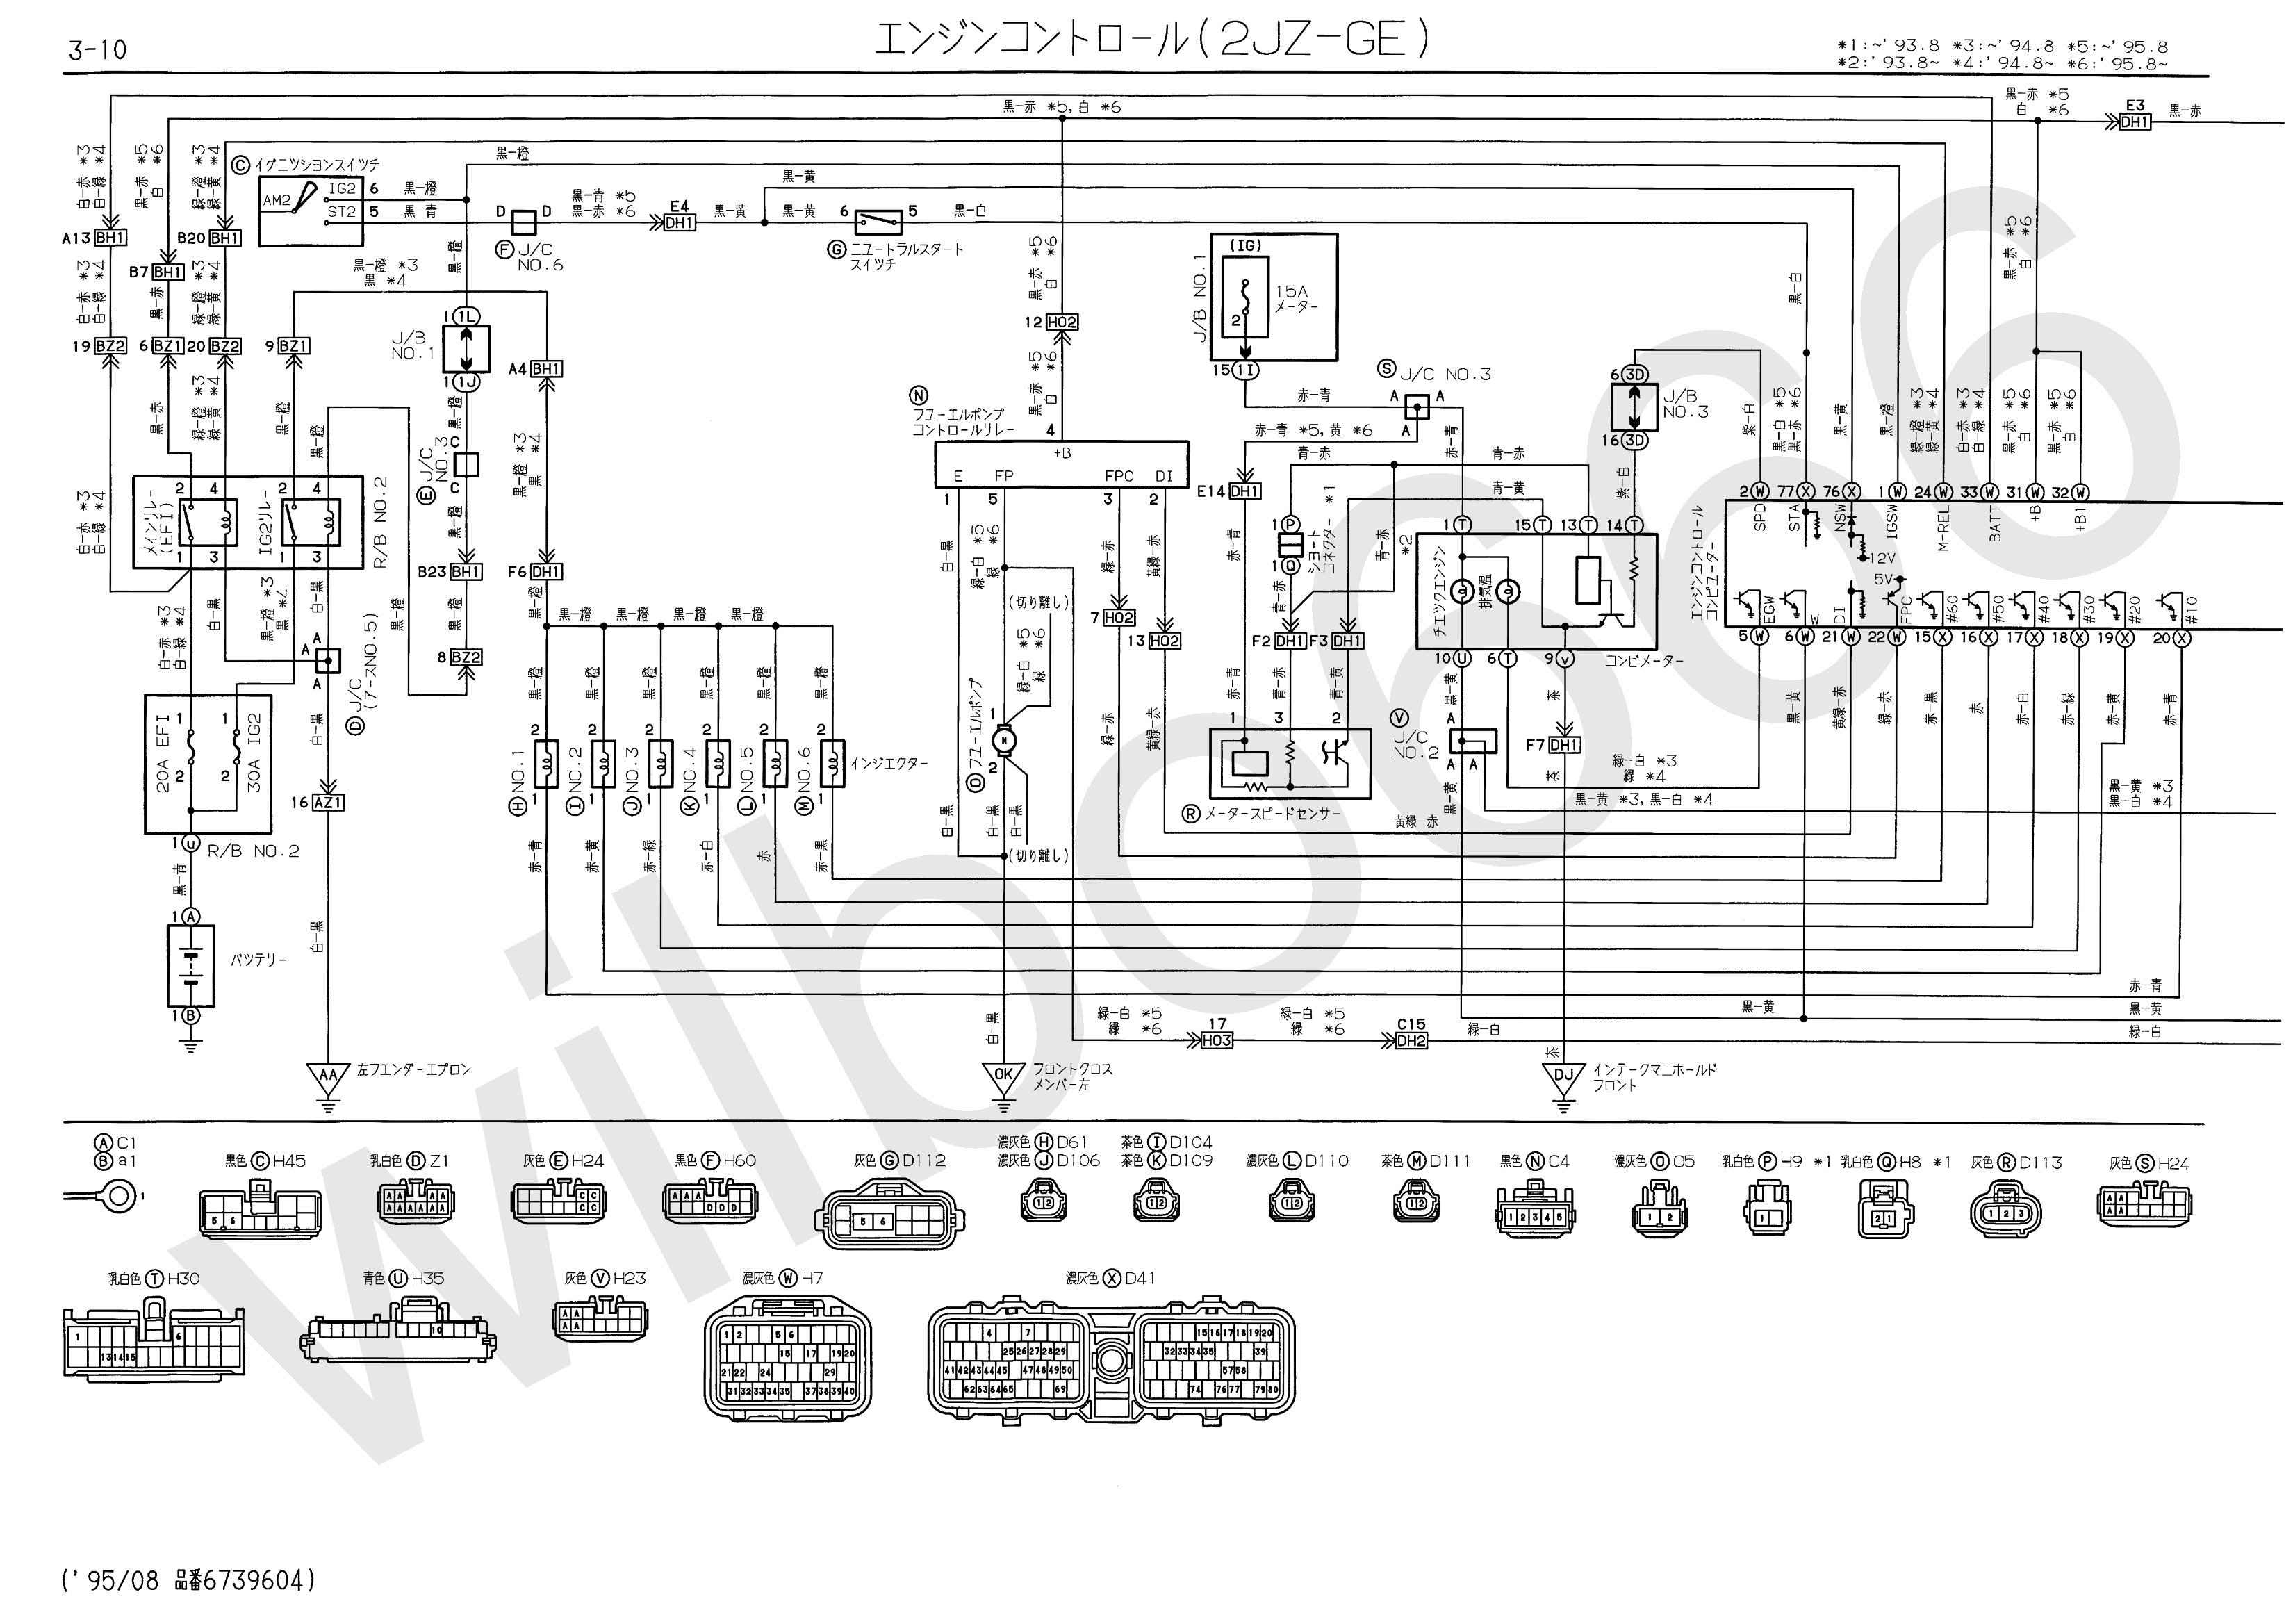 2001 buick regal wiring diagram  2001  free engine image for user manual download